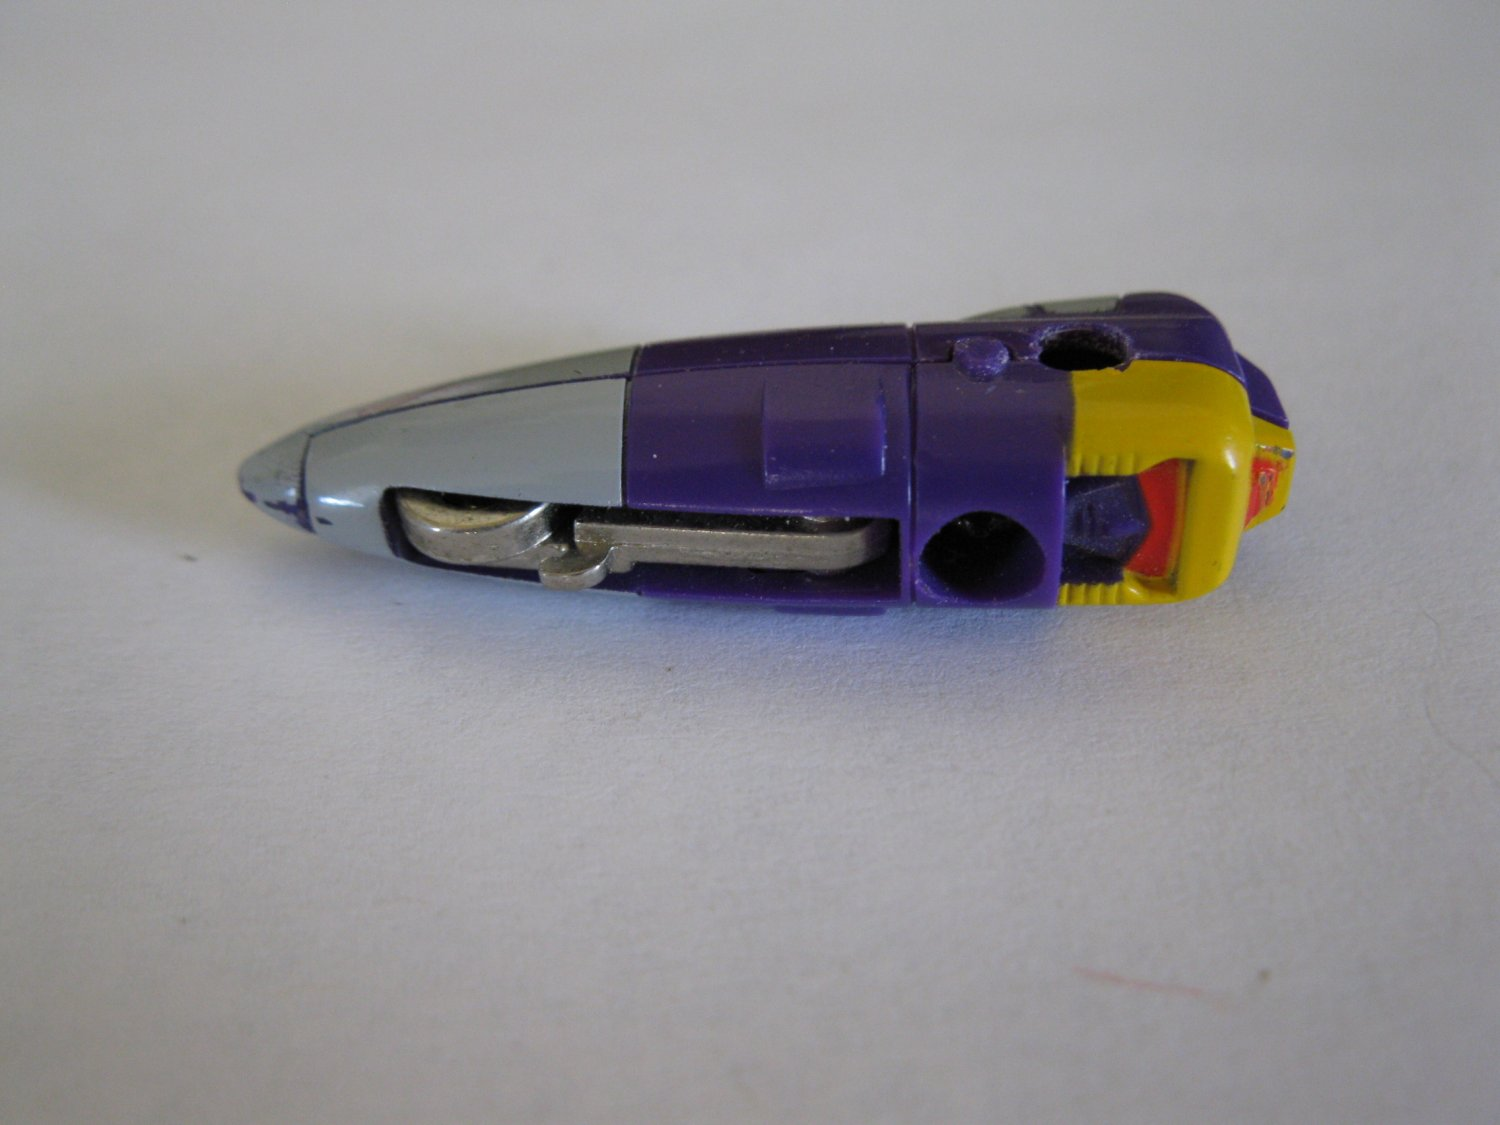 G1 Transformers Action figure part: 1985 Blitzwing - Head / Nosecone